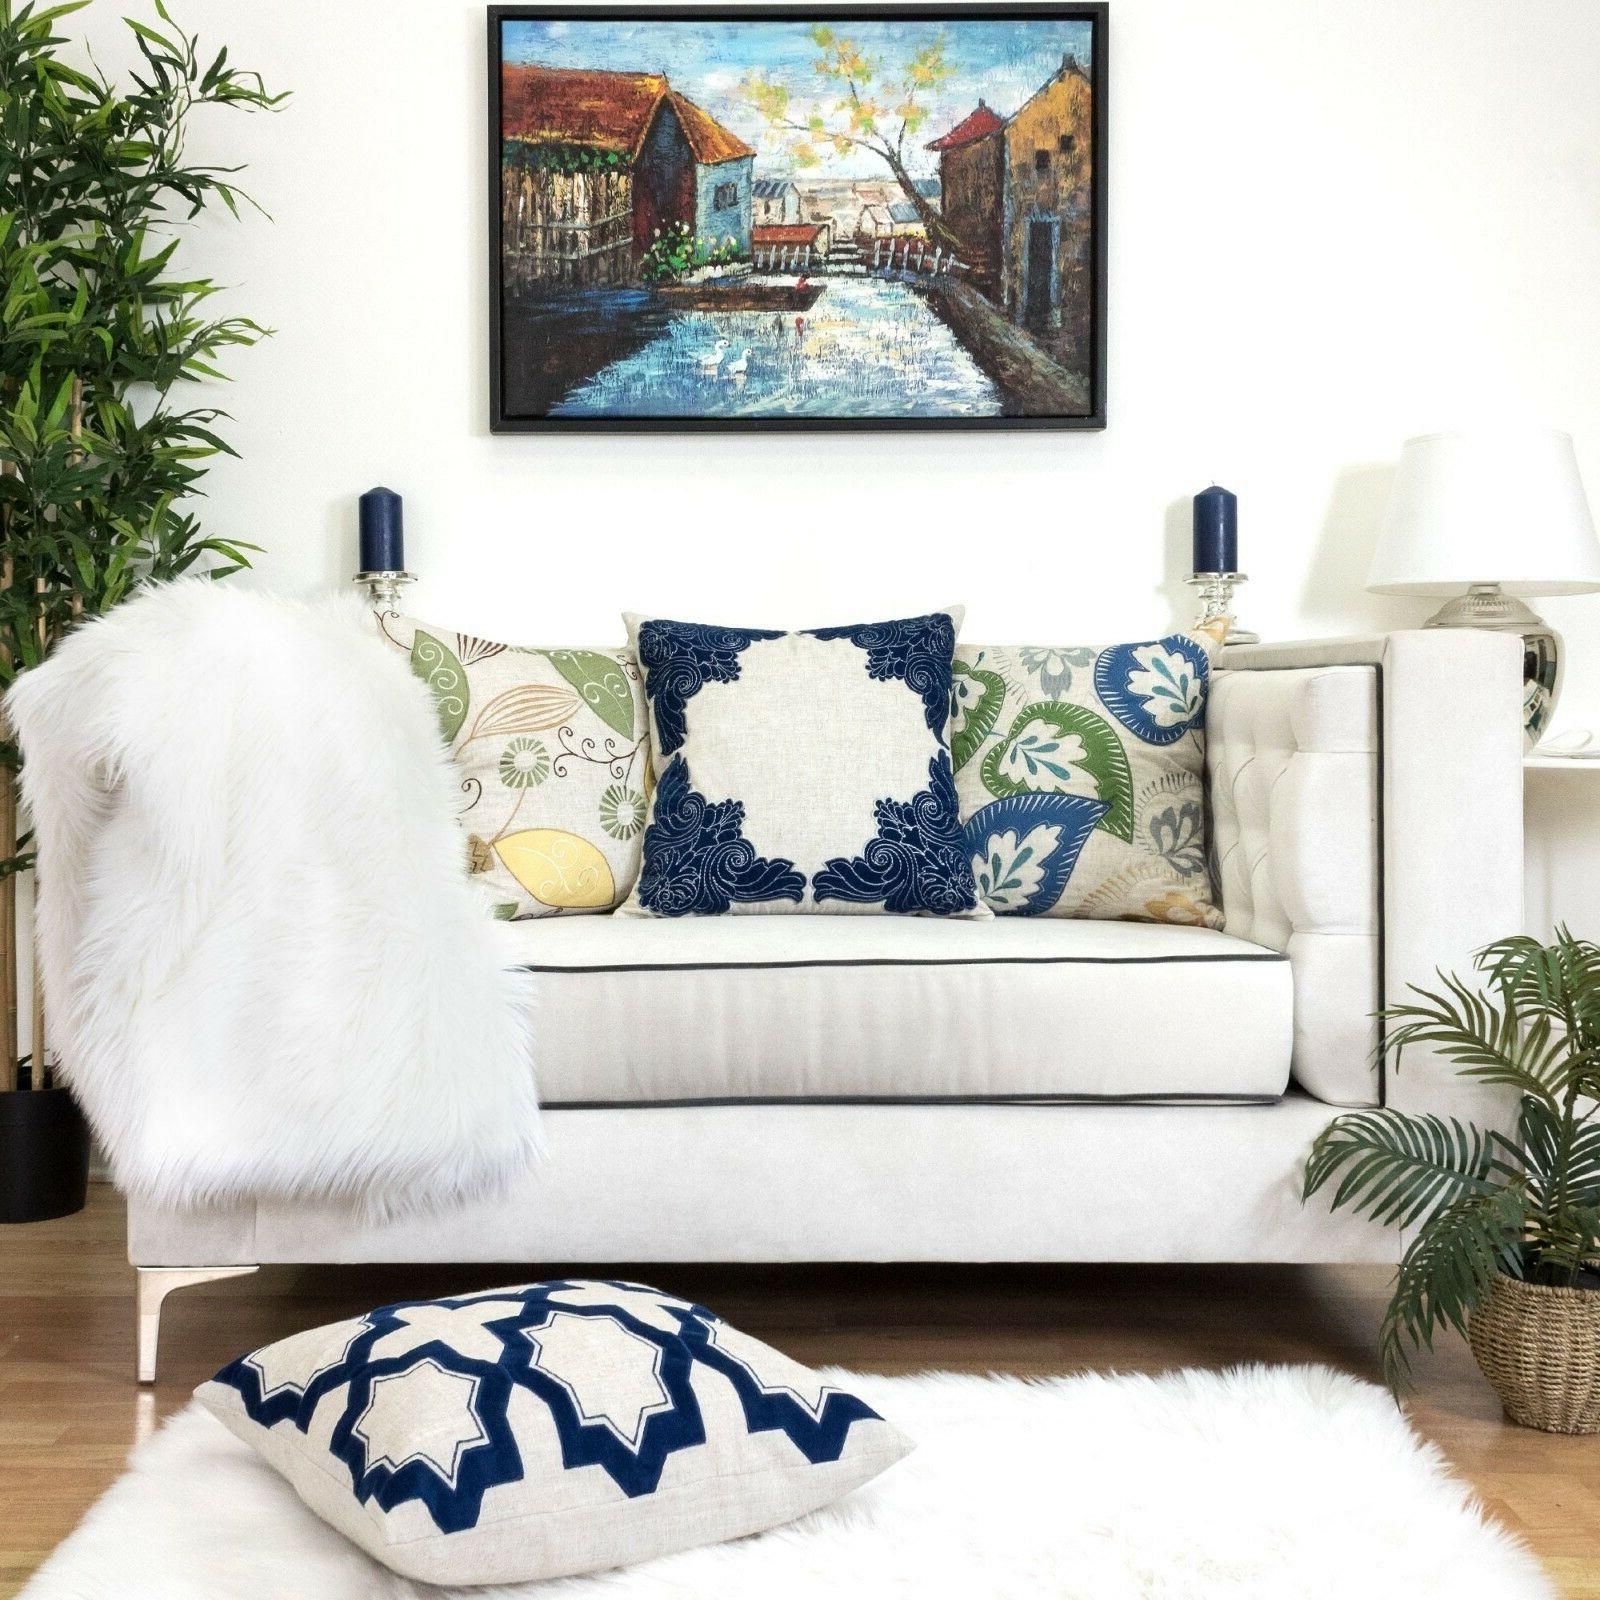 Homey Pillow Cover,Premium Embroidery Cushion